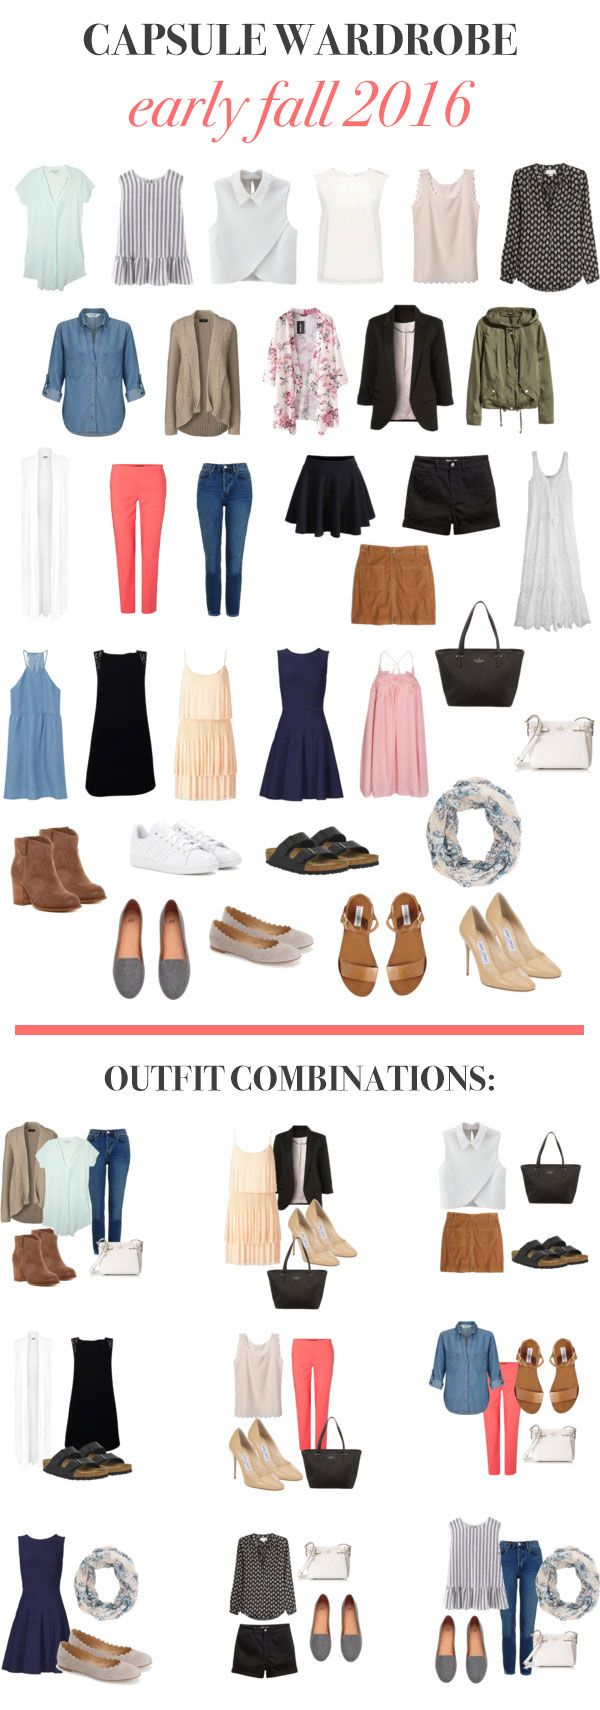 Capsule wardrobe for the early fall, along with some outfit ideas from this set of 33! Excited to put a *real* capsule wardrobe together for the fall starting Oct. 1. Here's why I decided on a mini version: http://anokay.life/blog/2016/9/15/capsule-wardrobe-early-fall-2016 #capsulewardrobe #fallcapsulewardrobe #33for3